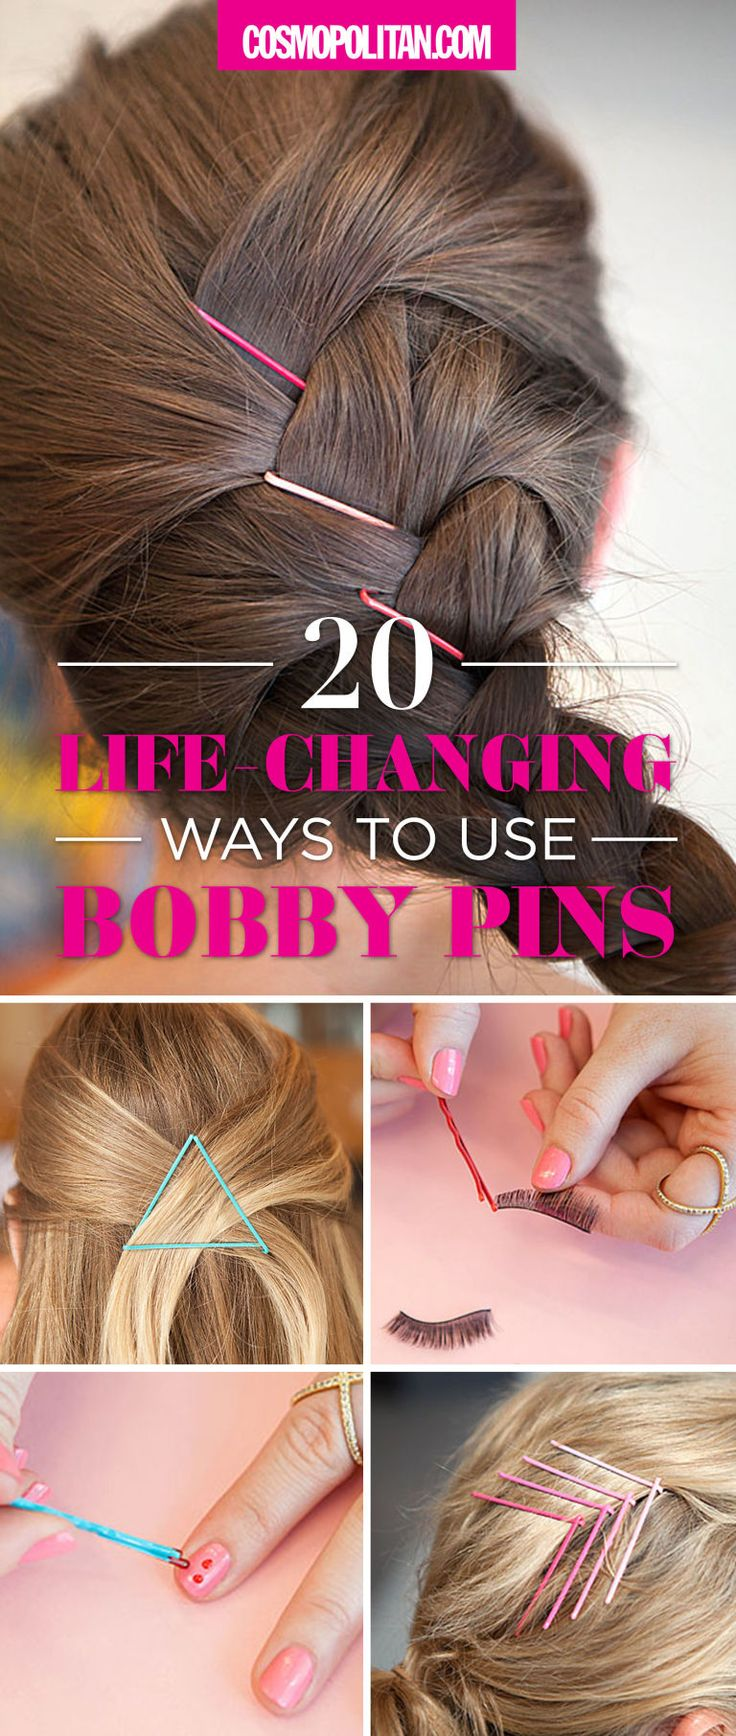 "Bobby pins are one of the few beauty tools with endless uses. Here's how to use them to give your look a ""wow"" factor that will leave everyone asking what your secret is."